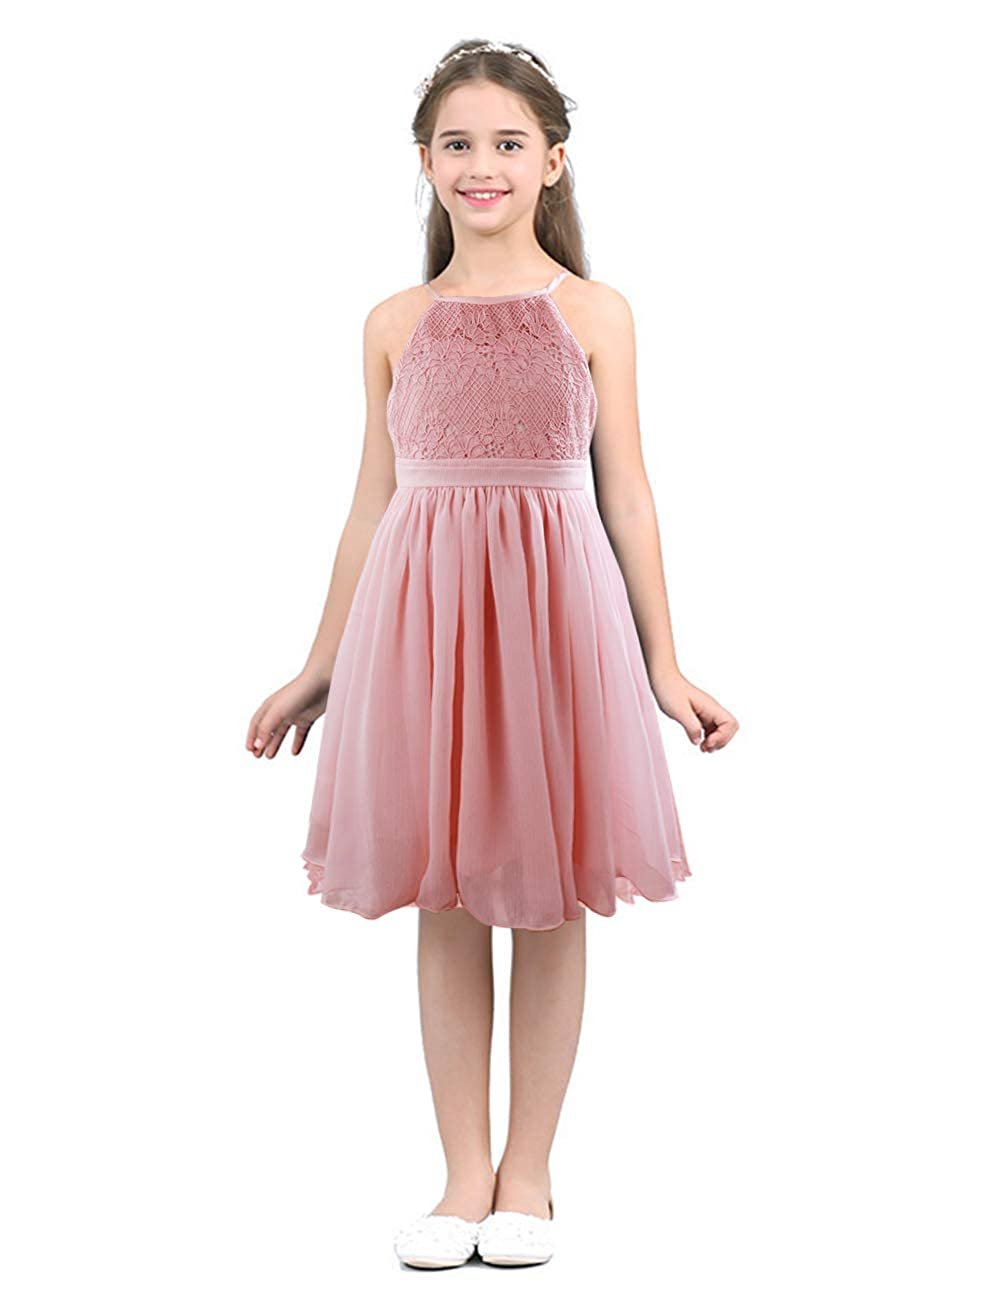 70be3ca85a7 Amazon.com  Mother Day Toddler Little Kids Girl Lace Ruffle Sleeveless  Dress Knitted Tulle Princess Tutu Floral Sundress Clothes Outfit  Clothing